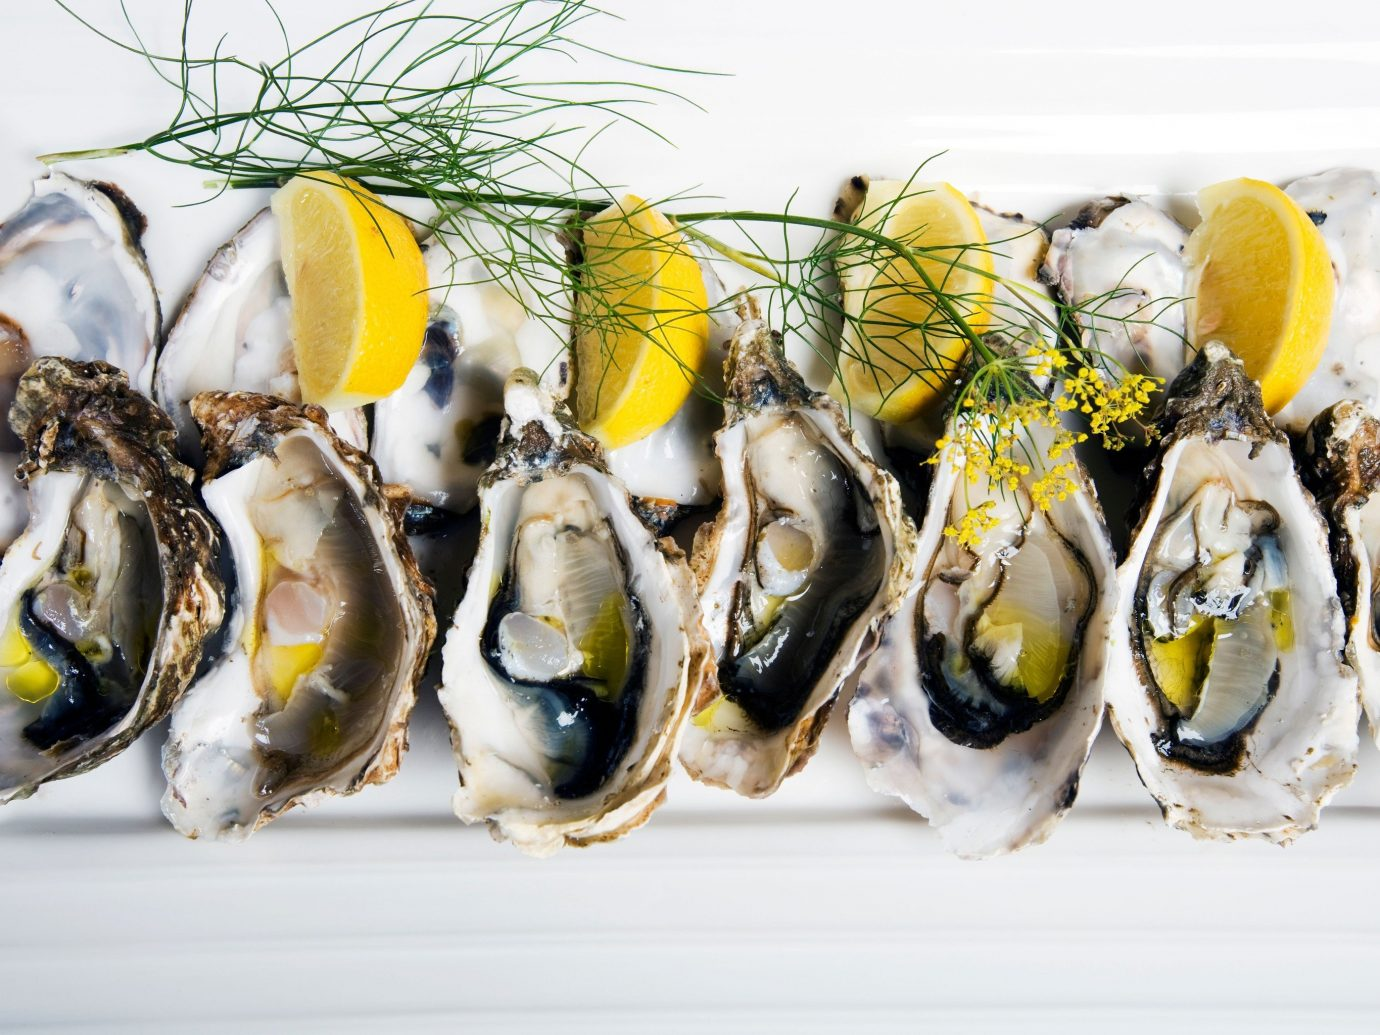 Food + Drink Travel Tips food yellow Seafood invertebrate mussel fish oyster animal source foods clams oysters mussels and scallops several